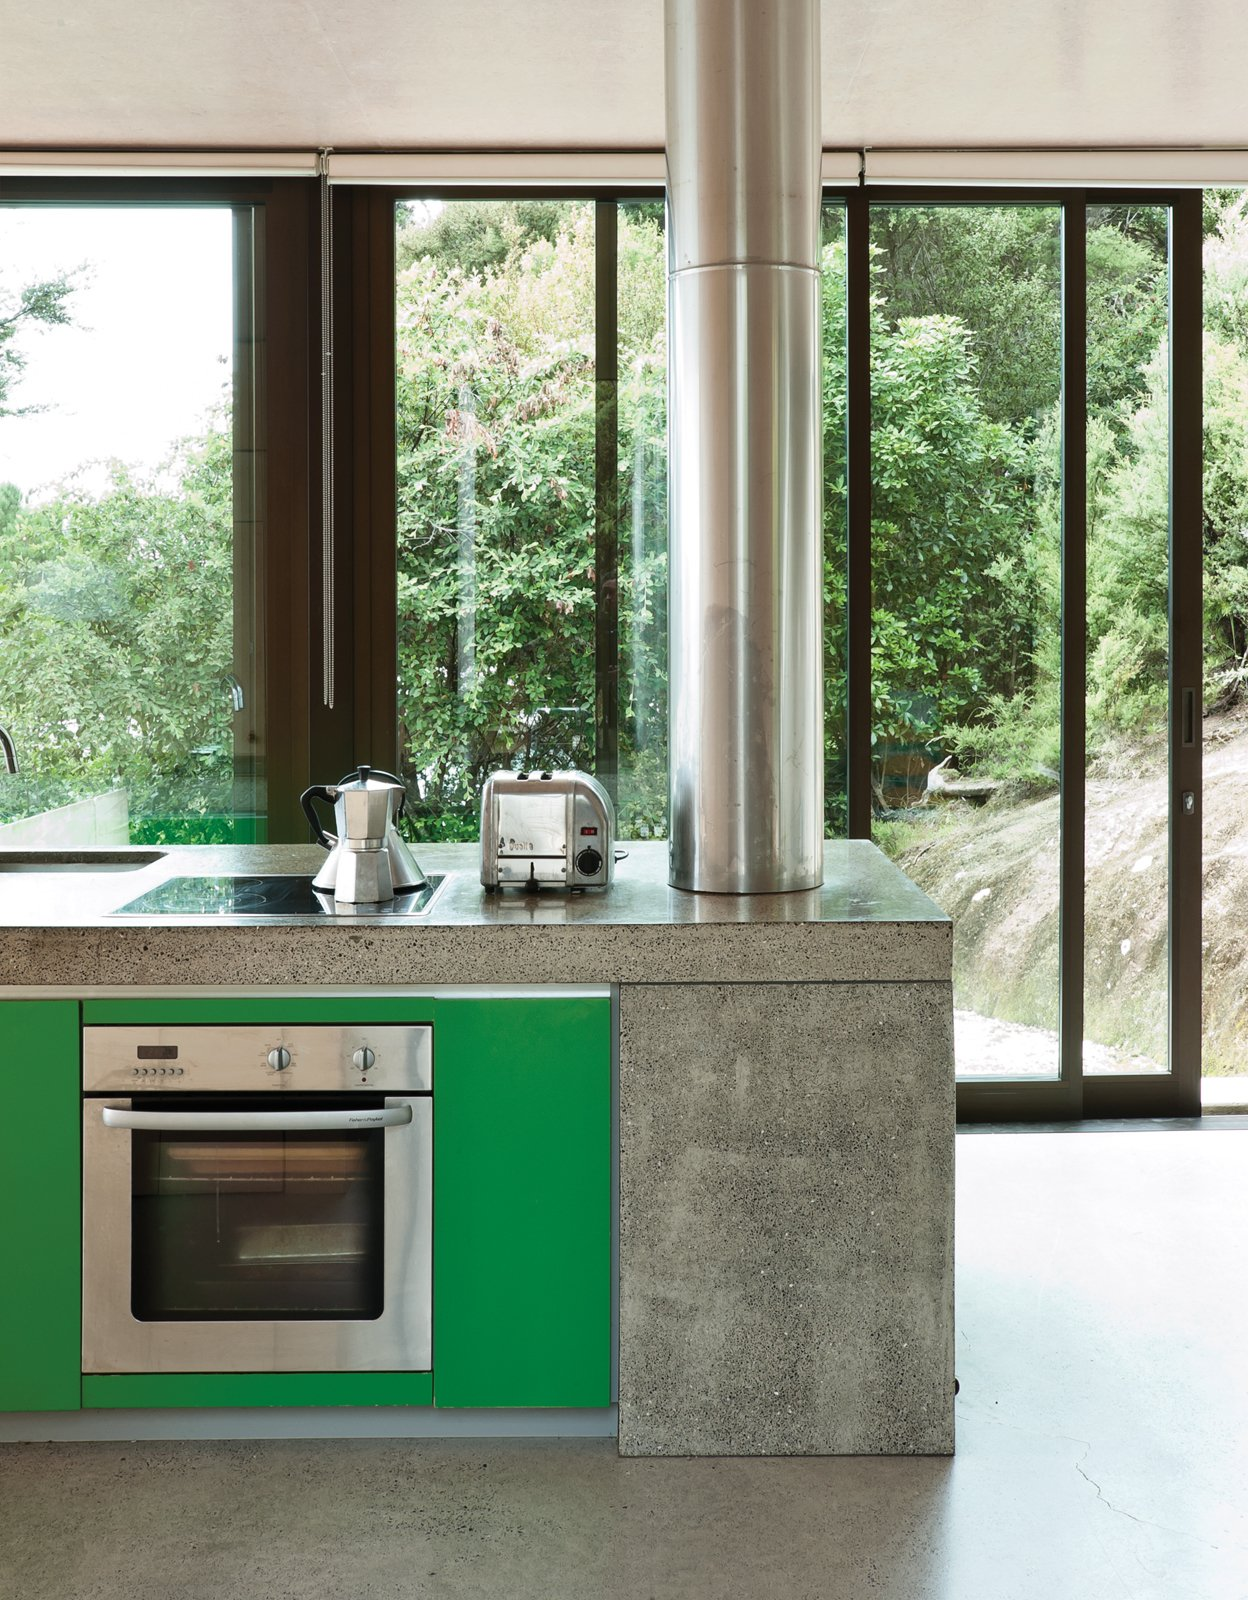 Kitchen, Concrete Counter, Cooktops, and Wall Oven A pop of color in the kitchen cabinets refers to the native greenery outside.  Photo 3 of 25 in Make Your Parents Happy by Building Them a House